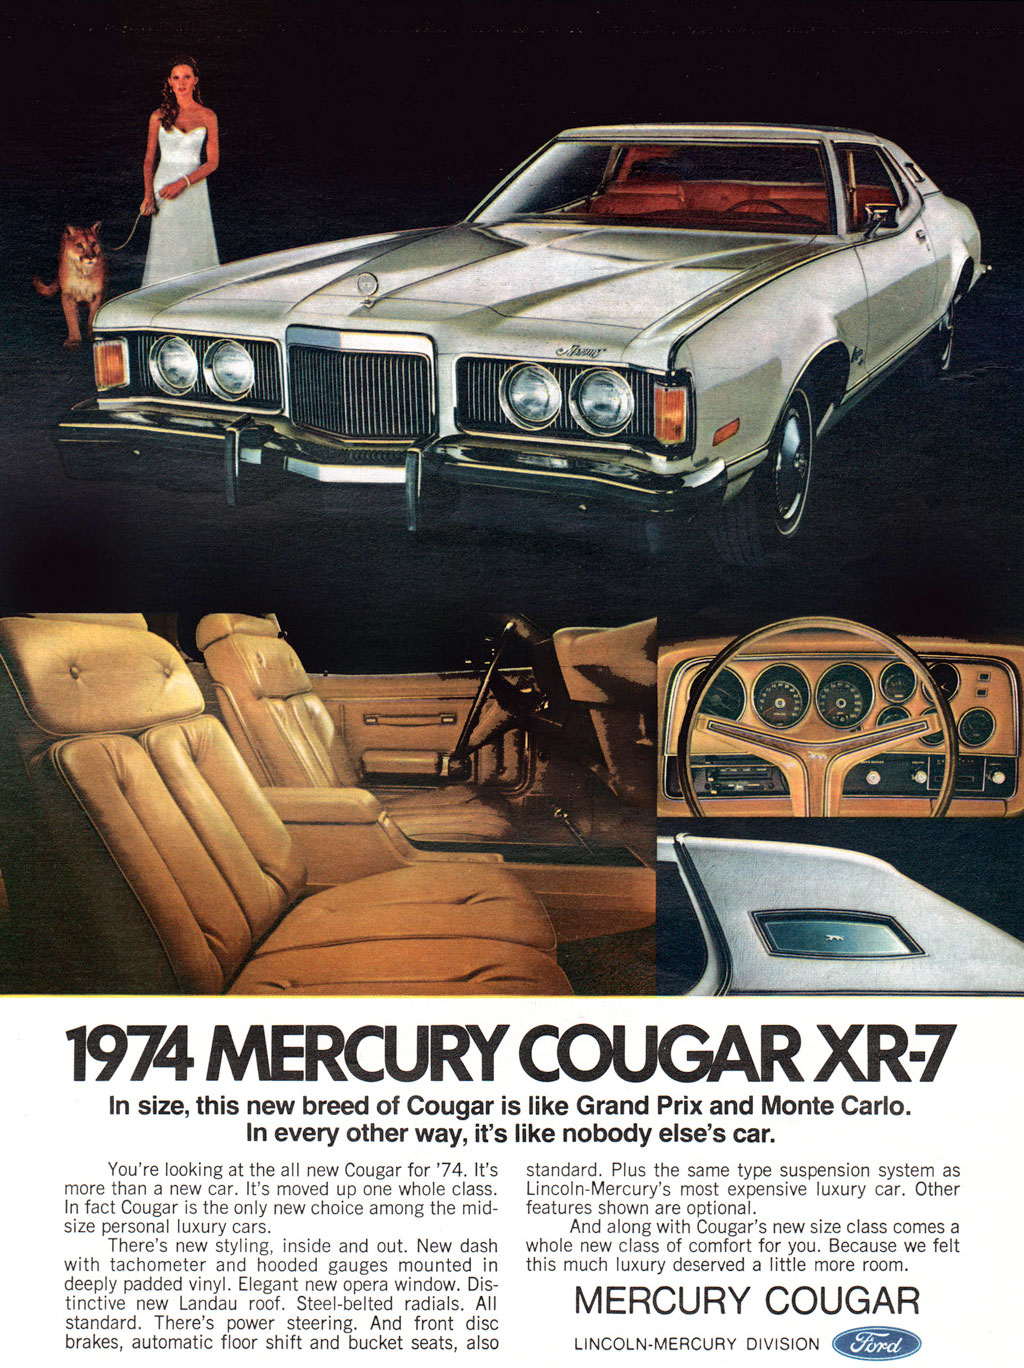 The 1974 Mercury Cougar XR-7. In size, this new breed of Cougar is like Grand Prix and Monte Carlo. In every other way, it's like nobody else's car. You're looking at the all new Cougar for '74. It's more than a new car. It's moved up one whole class. In fact Cougar is the only new choice among the mid-size personal luxury cars. There's new styling, inside and out. New dash with tachometer and hooded gauges mounted in deeply padded vinyl. Elegant new opera window. Dis-tinctive new Landau roof. Steel-belted radials. All standard. There's power steering. And front disc brakes, automatic floor shift and bucket seats, also  standard. Plus the same type suspension system as Lincoln-Mercury's most expensive luxury car. Other features shown are optional. And along with Cougar's new size class comes a whole new class of comfort for you. Because we felt this much luxury deserved a little more room.  MERCURY COUGAR  LINCOLN-MERCURY DIVISION C----)/